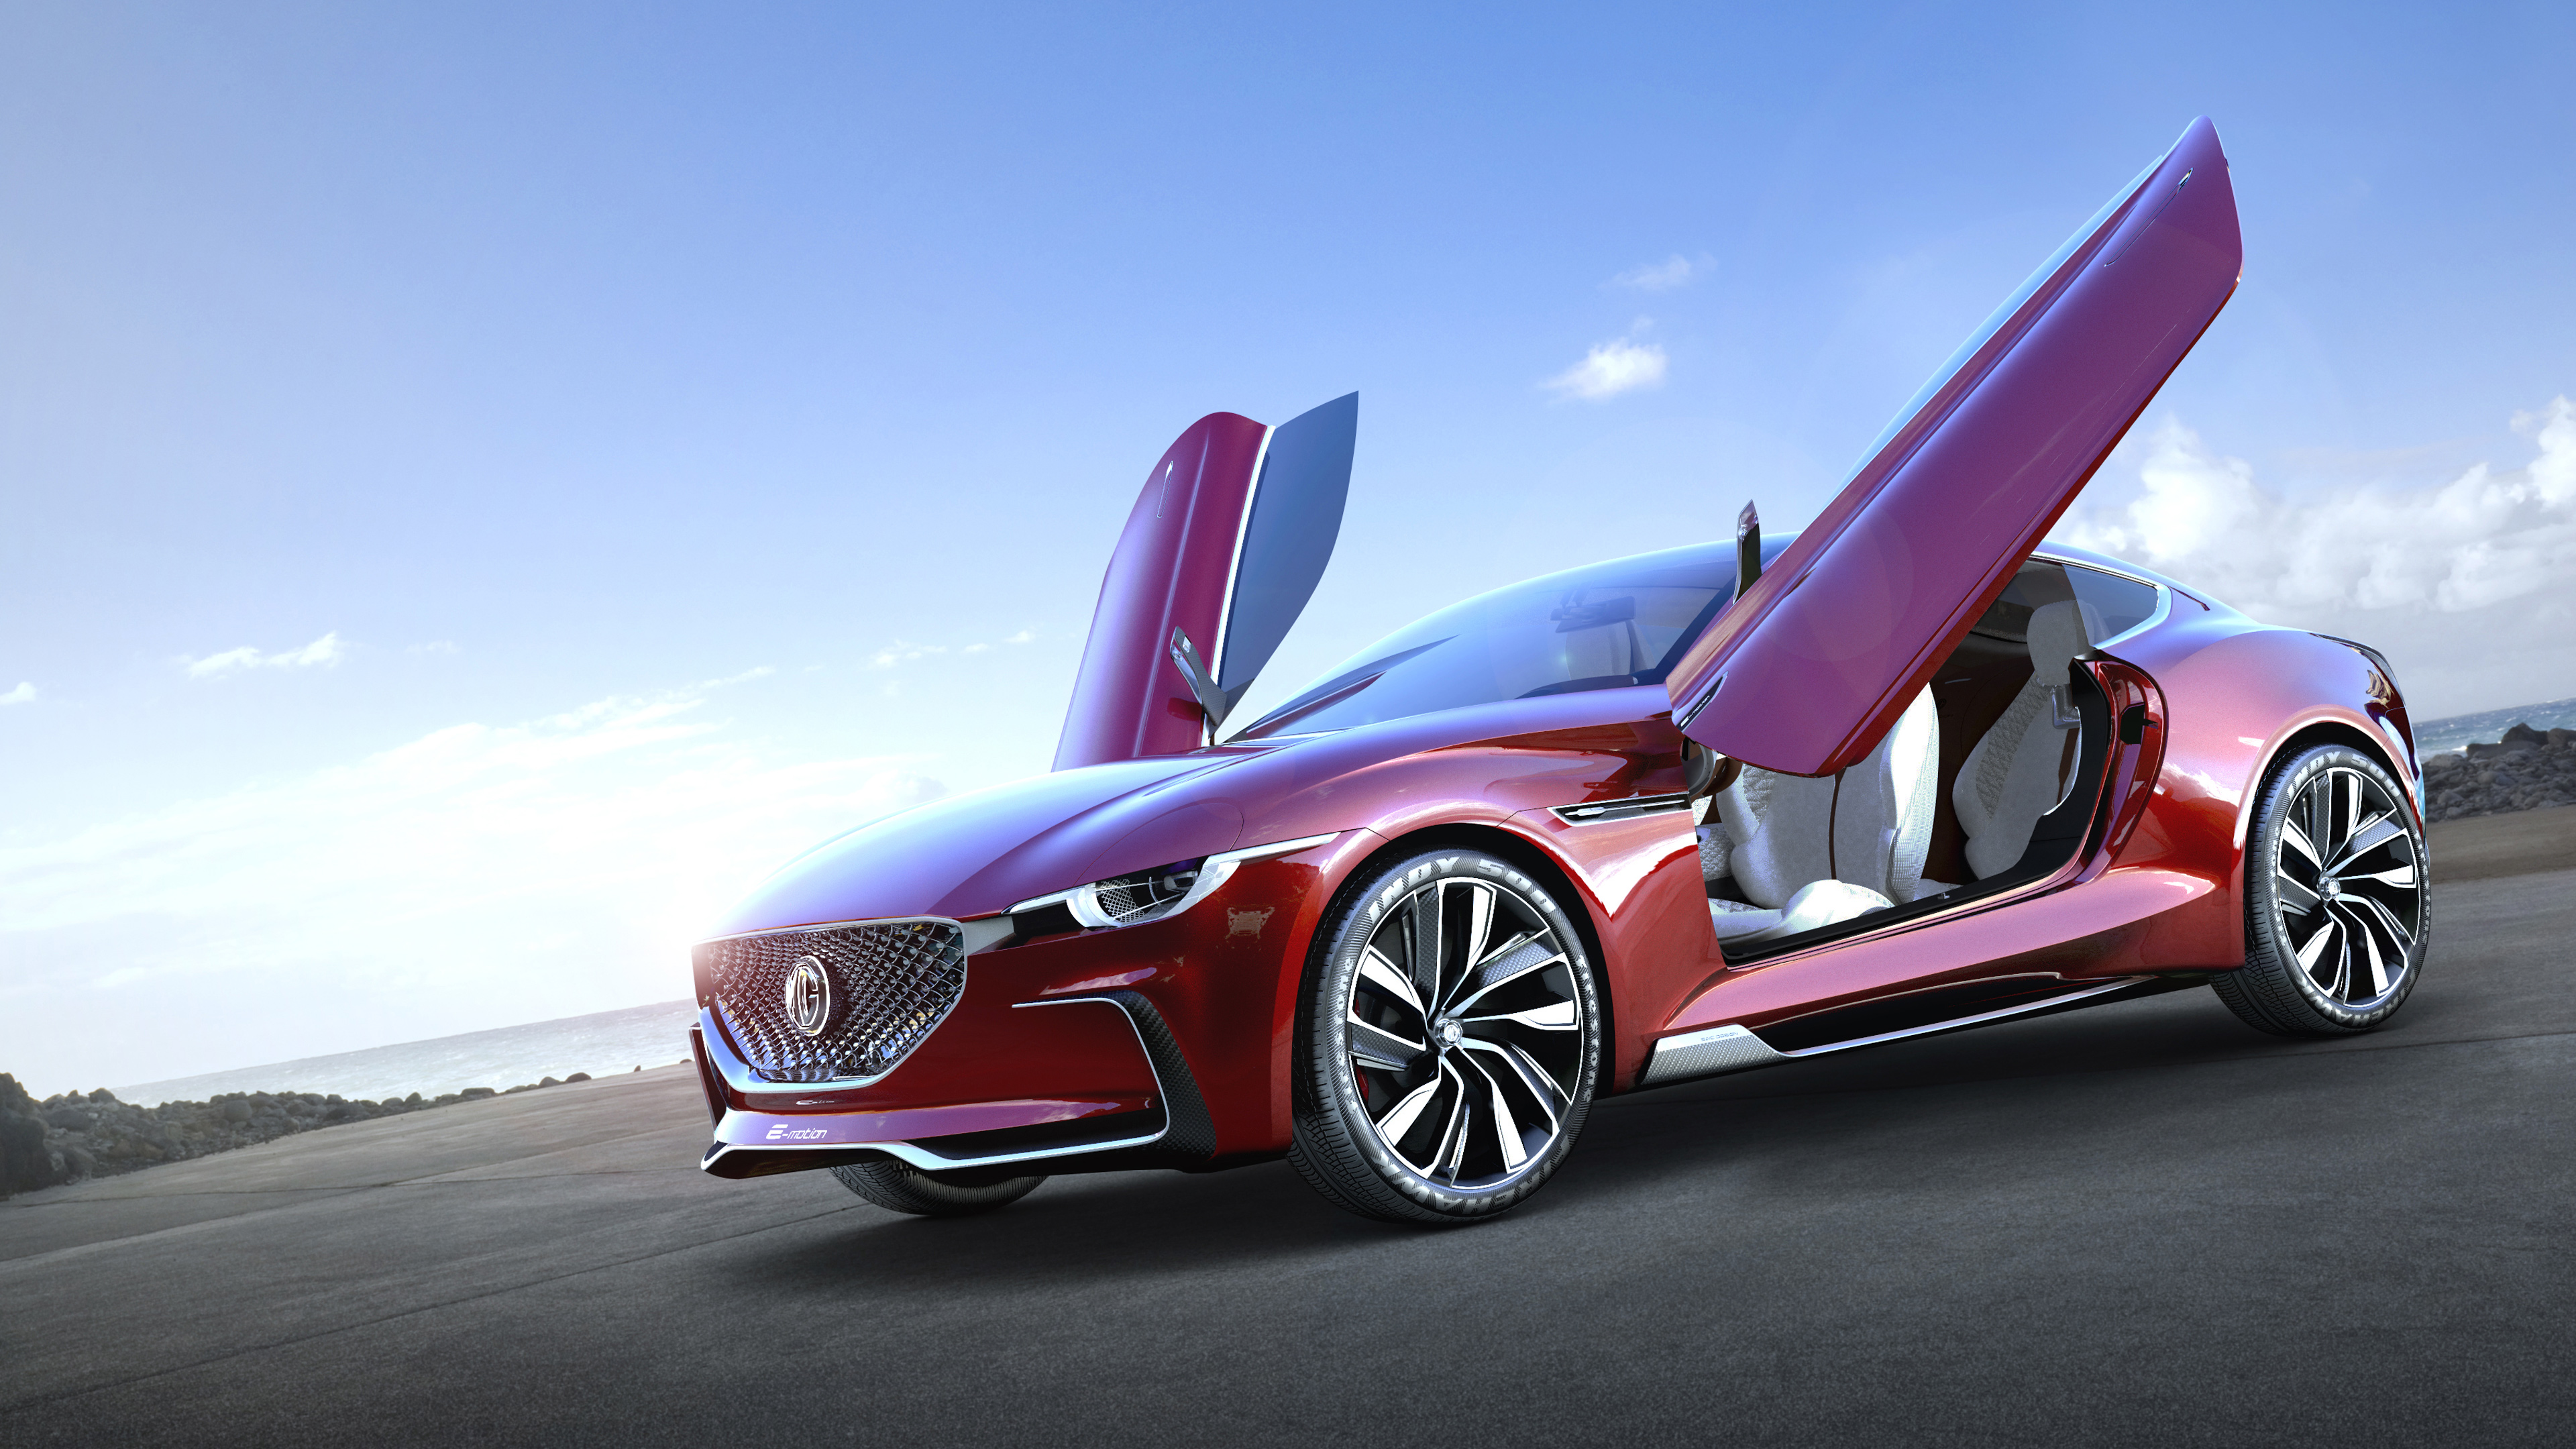 mg e motion concept car 3 wallpaper | hd car wallpapers | id #7694